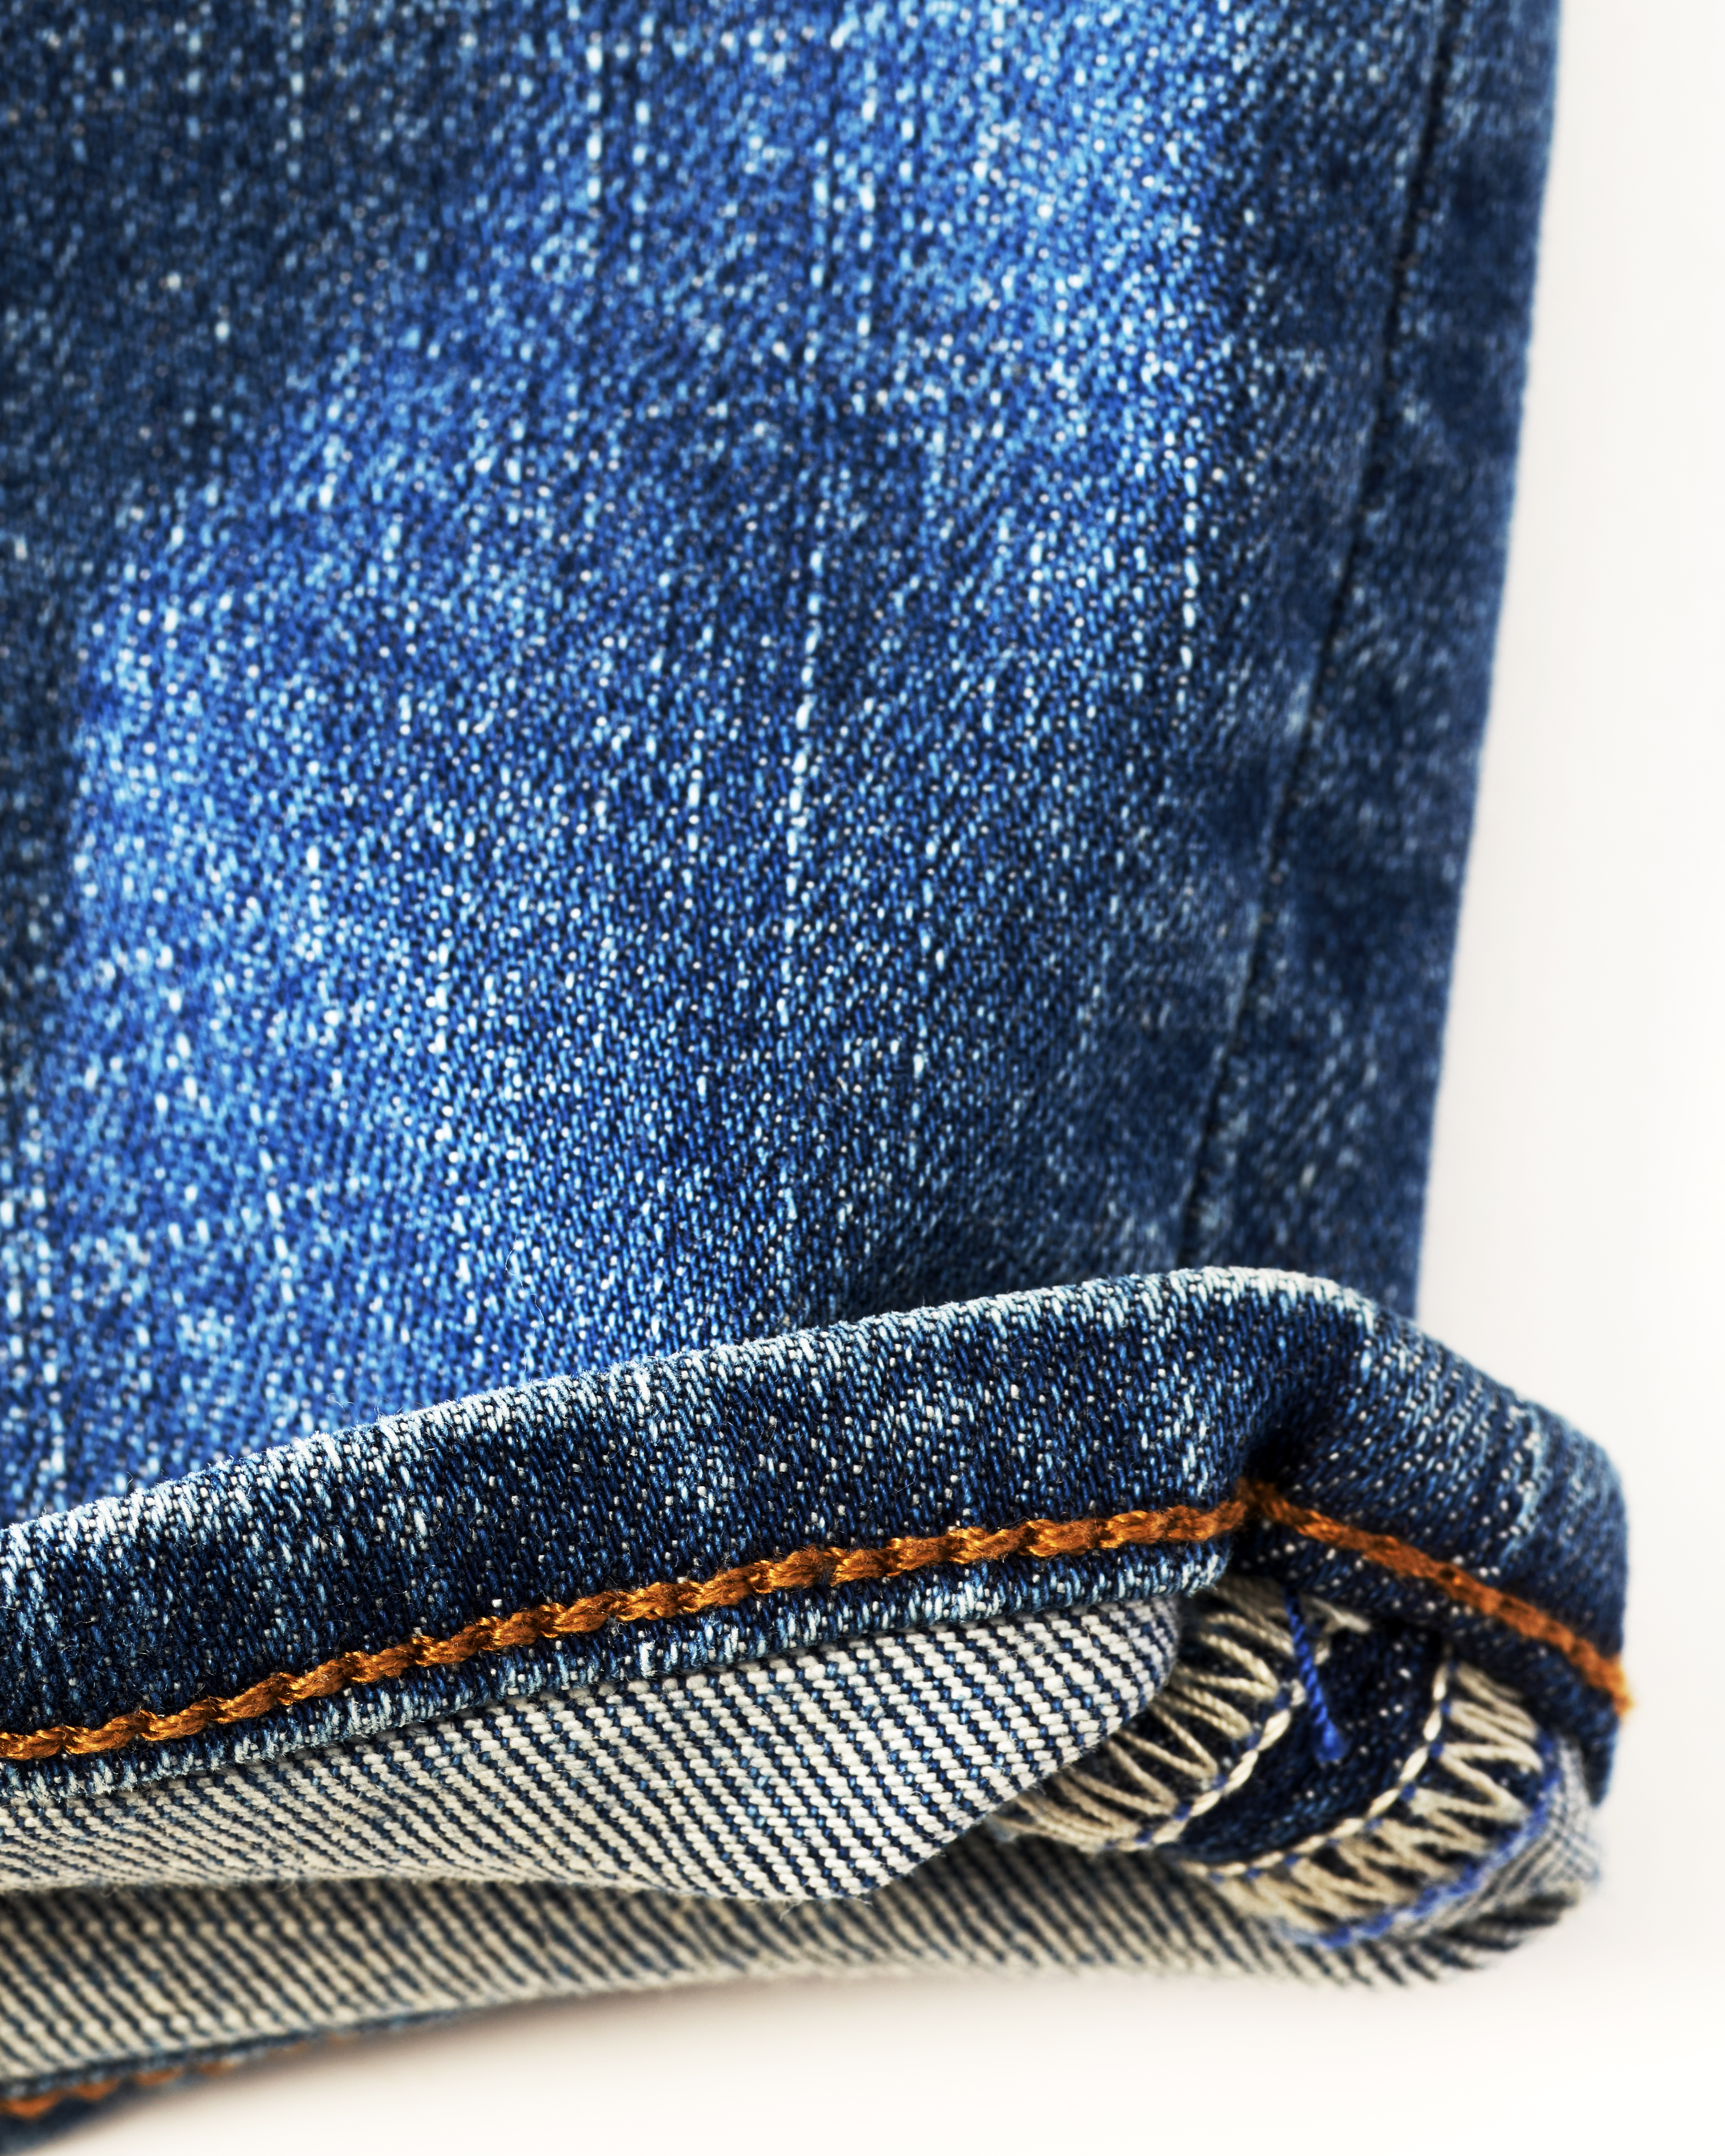 GAP_denim_closeup_2